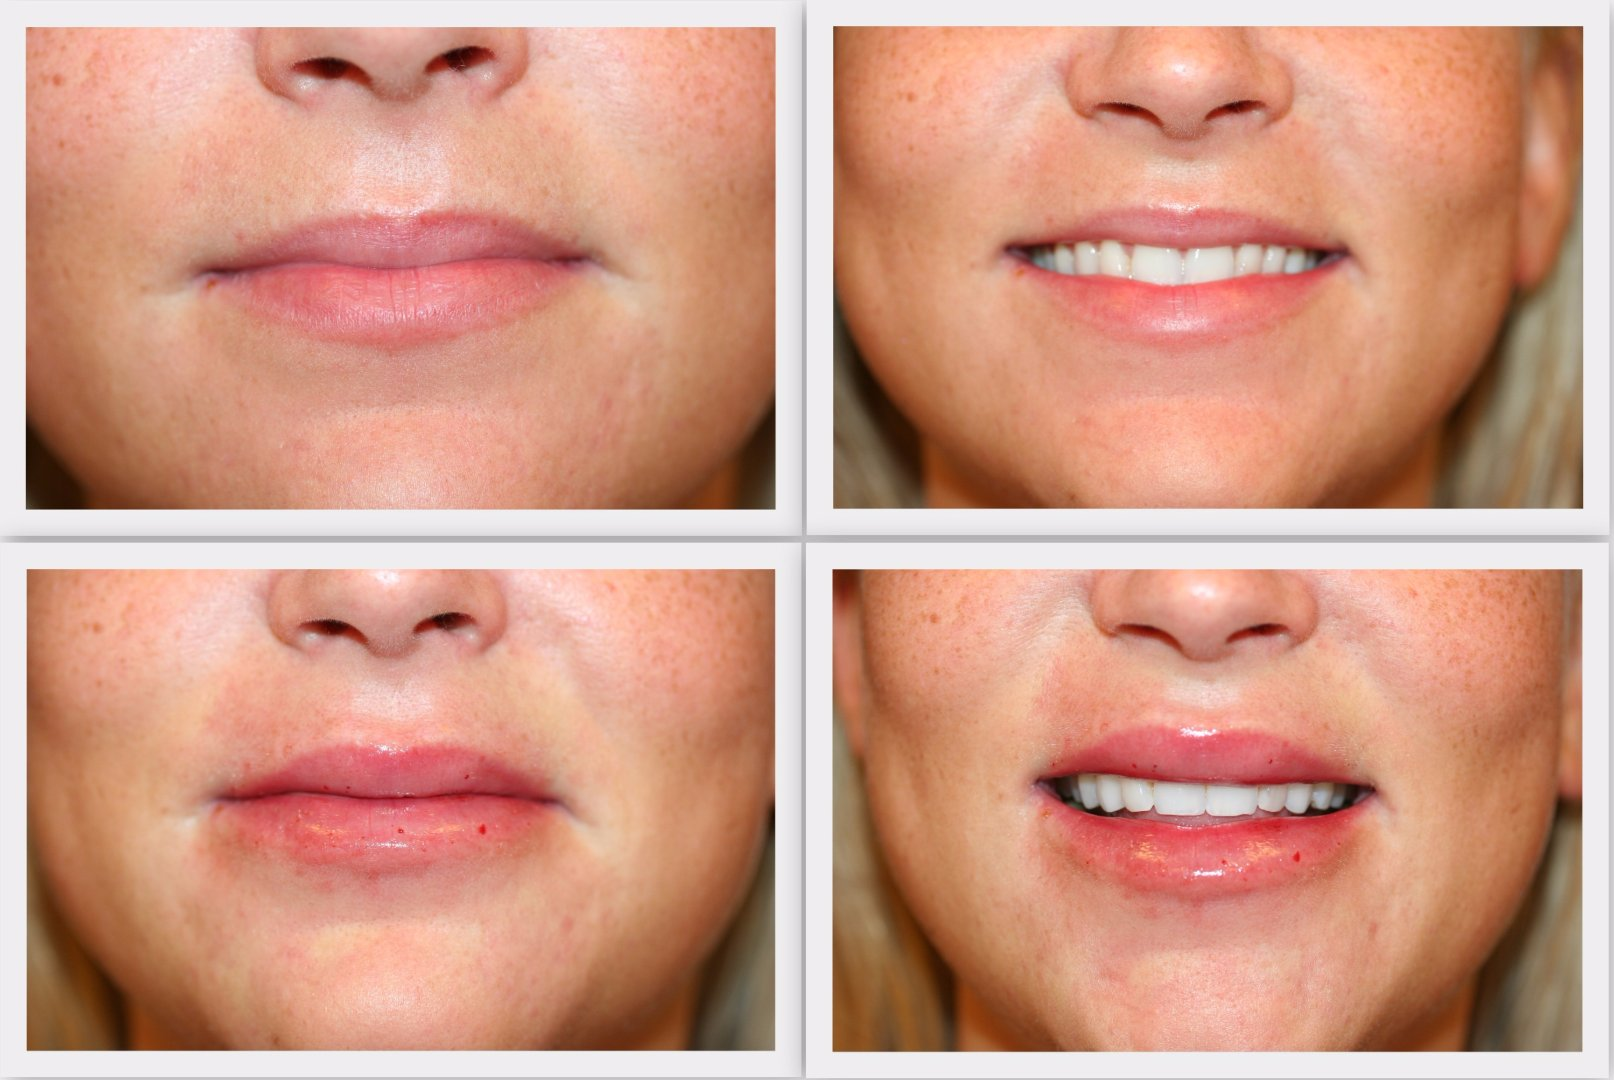 Filler lips Dr. Nelissen - Global Care Clinic